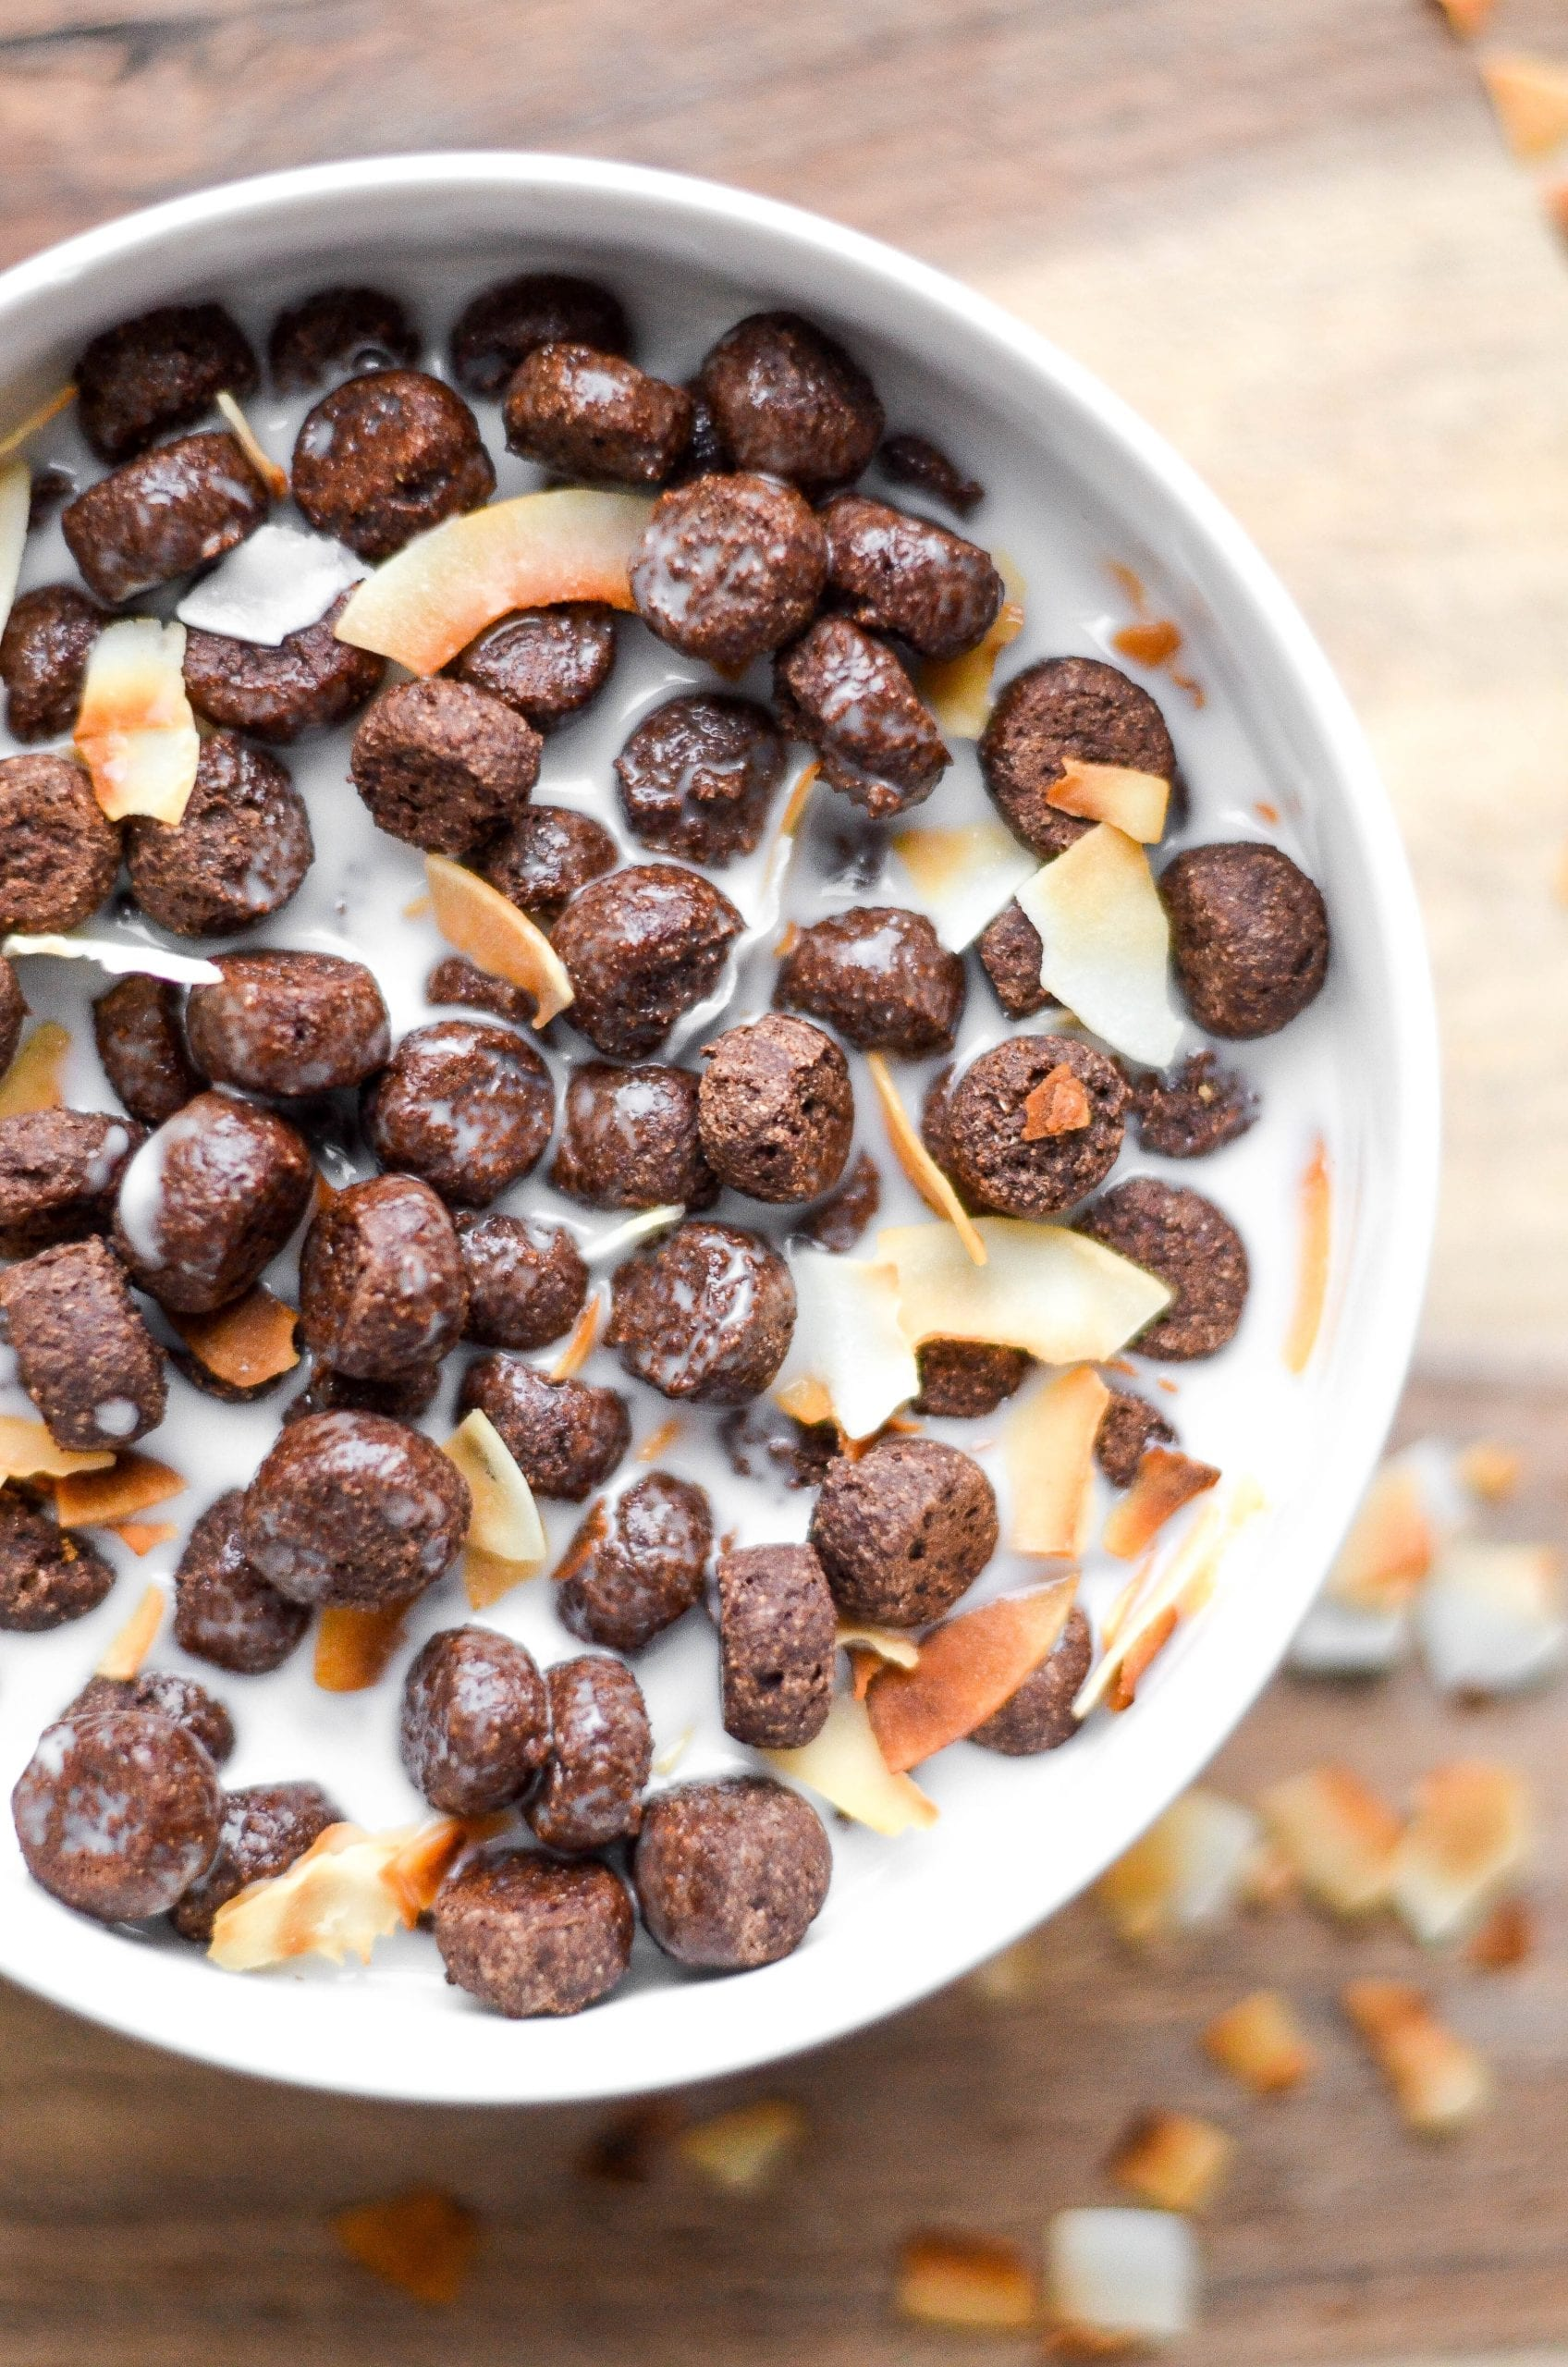 Chocolate Coconut Cereal